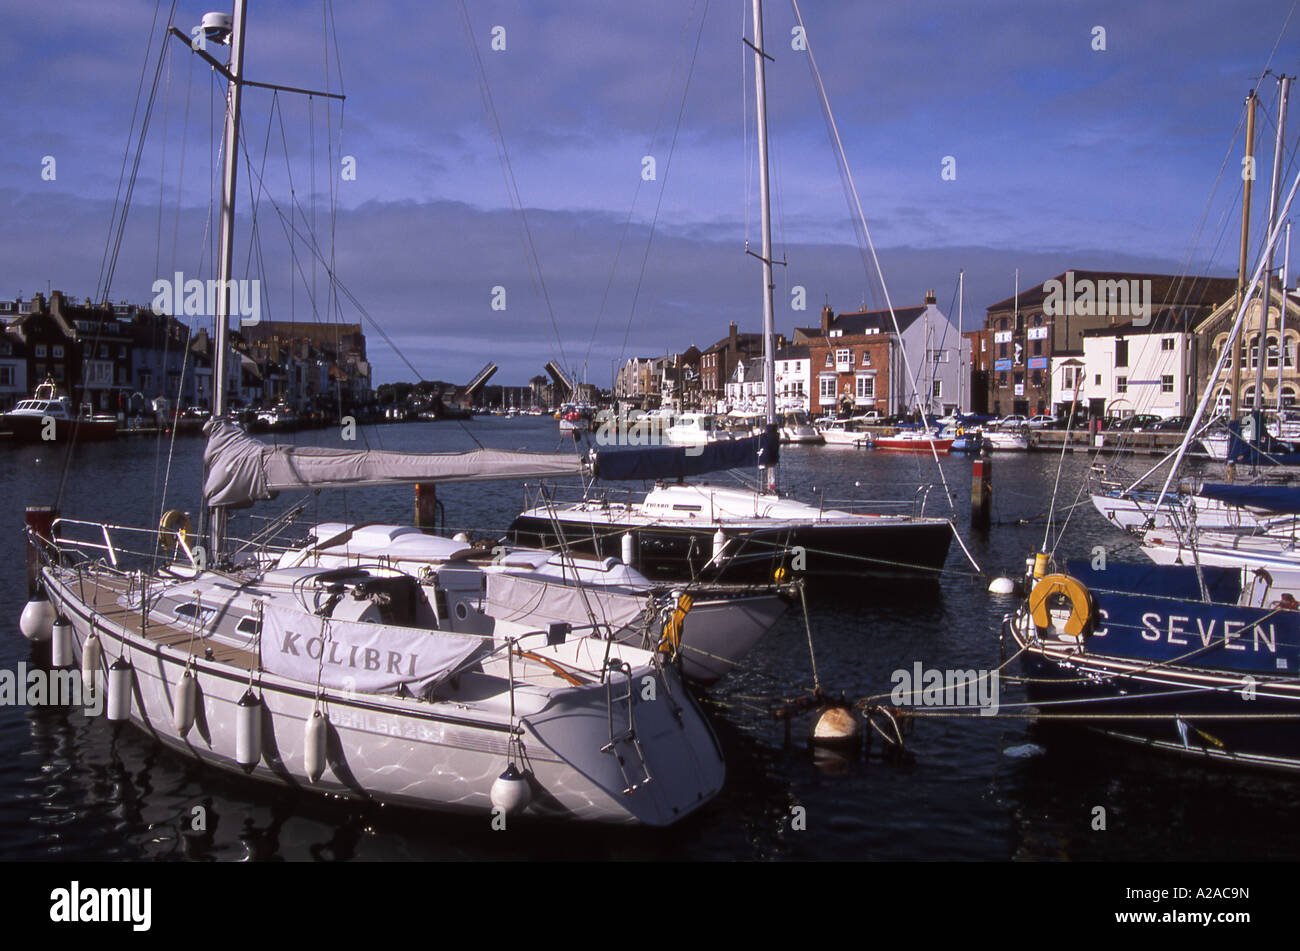 Yachts moored along the River Wey and in the harbour area at Weymouth, Dorset - Stock Image